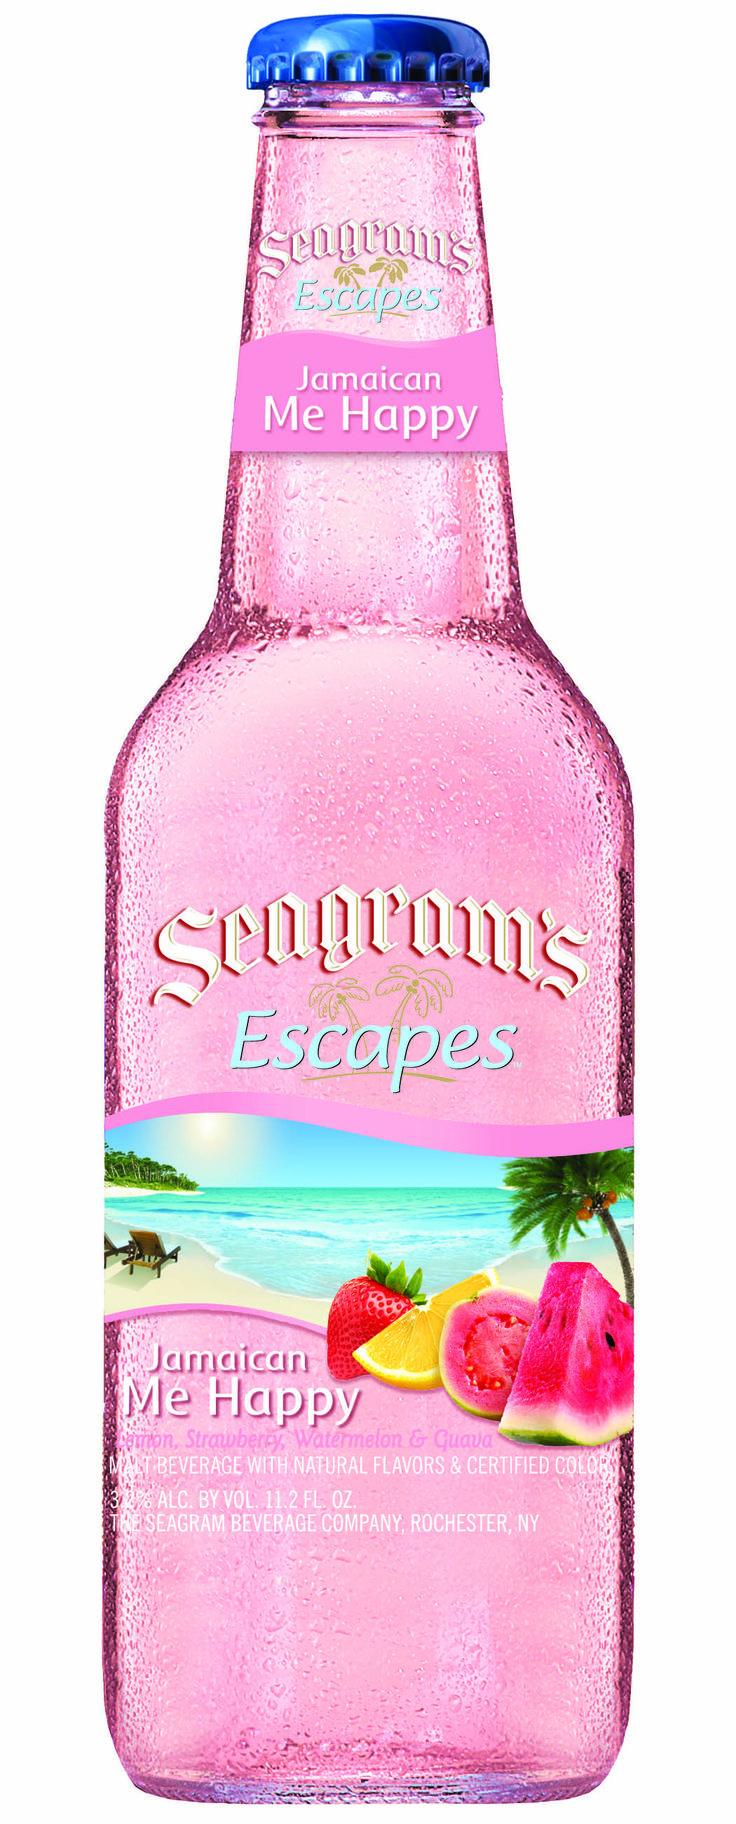 Mark.. this one is for you!!! and of course Mema!!! Seagram's escapes Jamaican Me Happy. MY FAVORITEEEEE!!!!